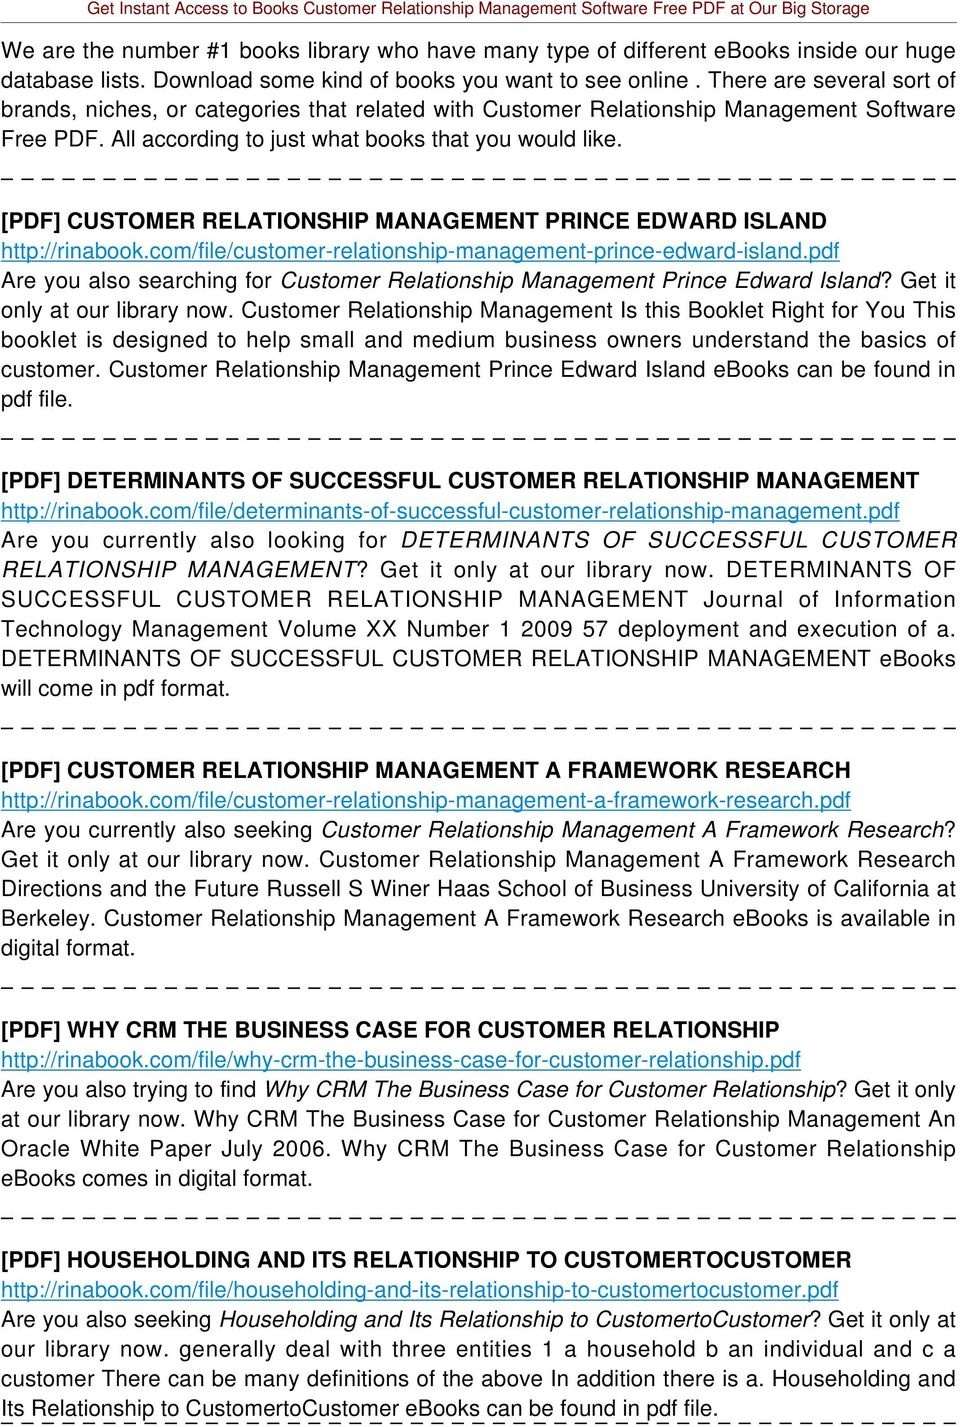 [PDF] CUSTOMER RELATIONSHIP MANAGEMENT PRINCE EDWARD ISLAND http://rinabook.com/file/customer-relationship-management-prince-edward-island.